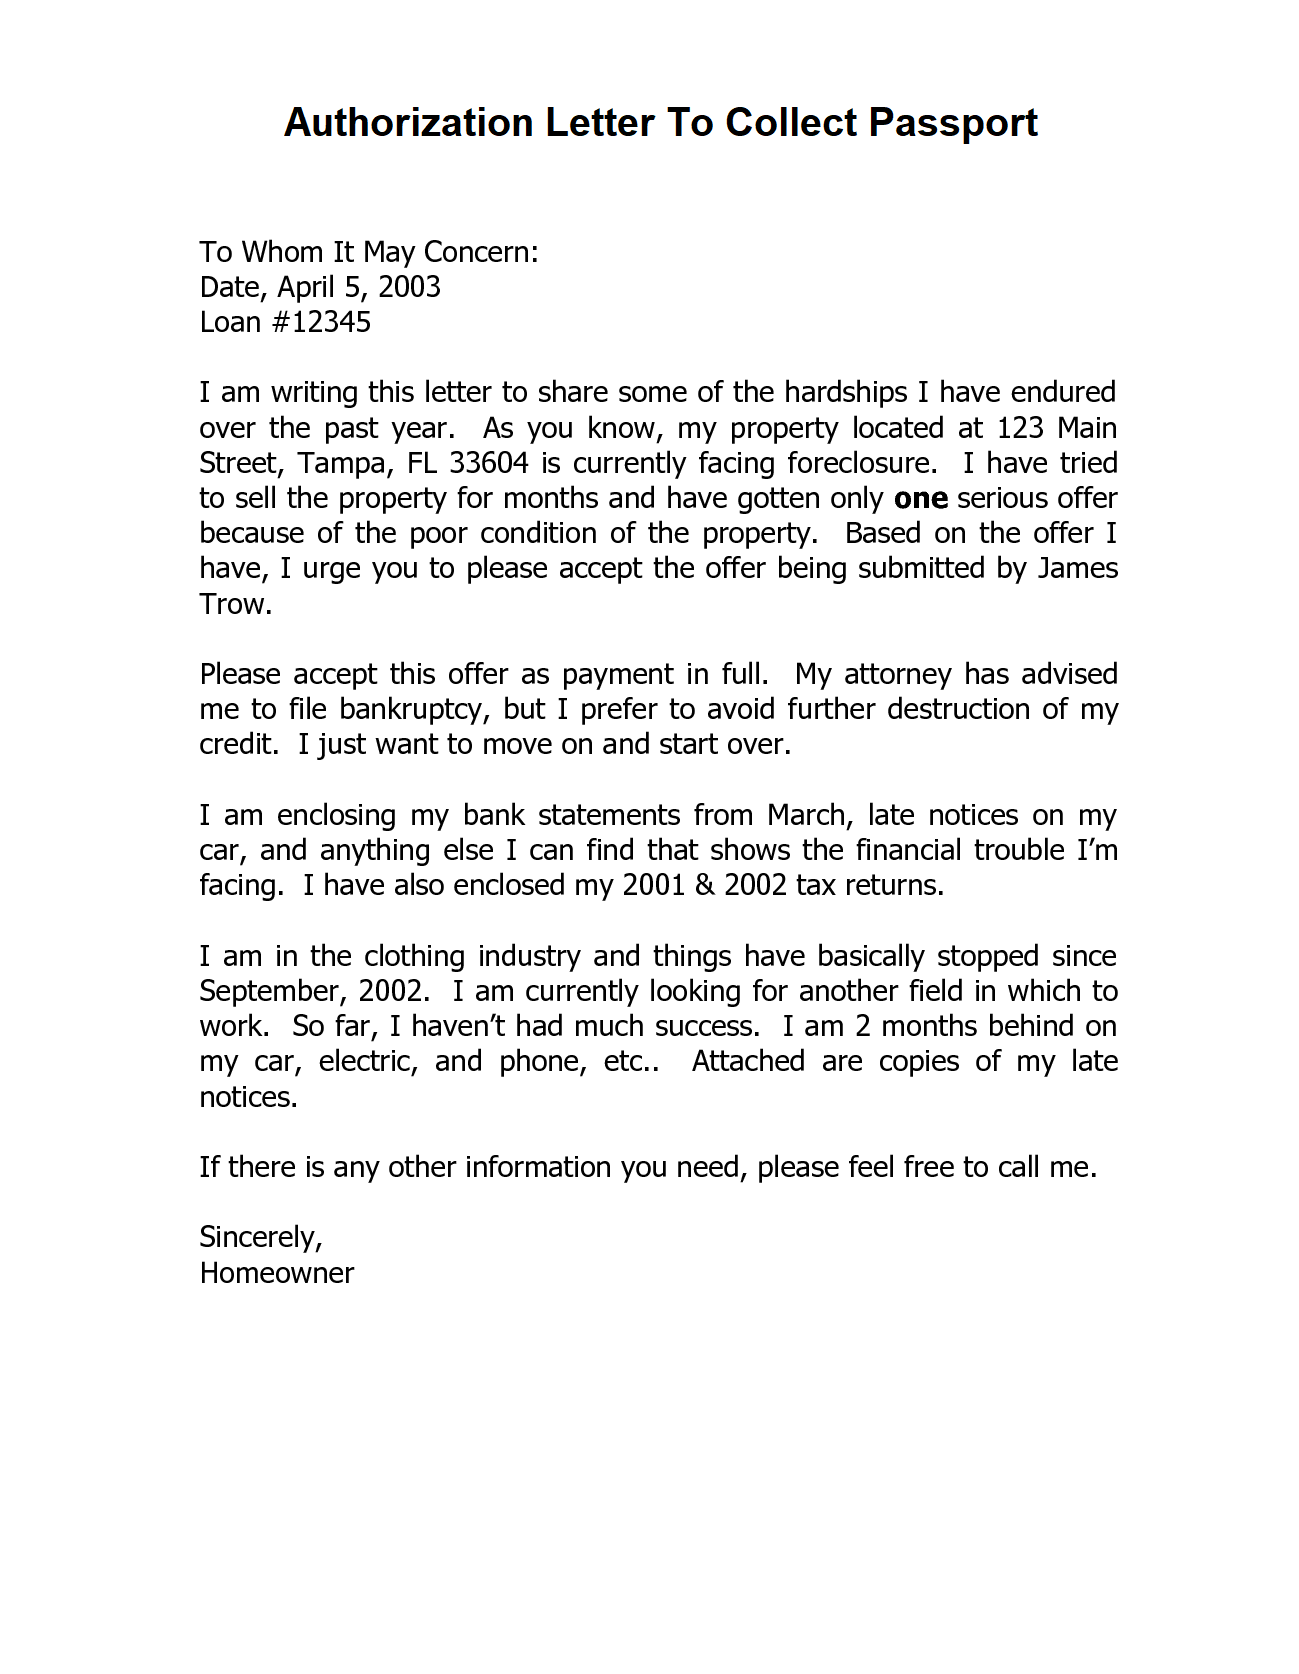 Authorization Letter To Collect Passport from Post Office